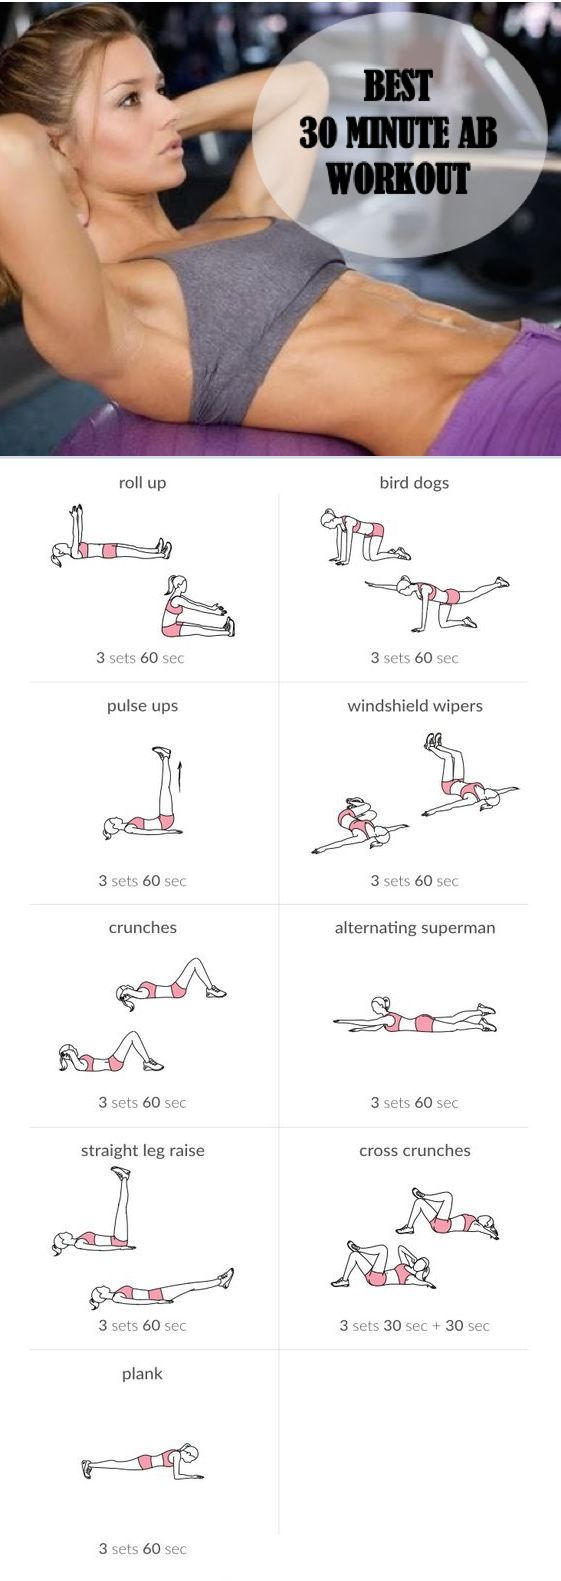 AB WORKOUT (Lunchpails & Lipstick)